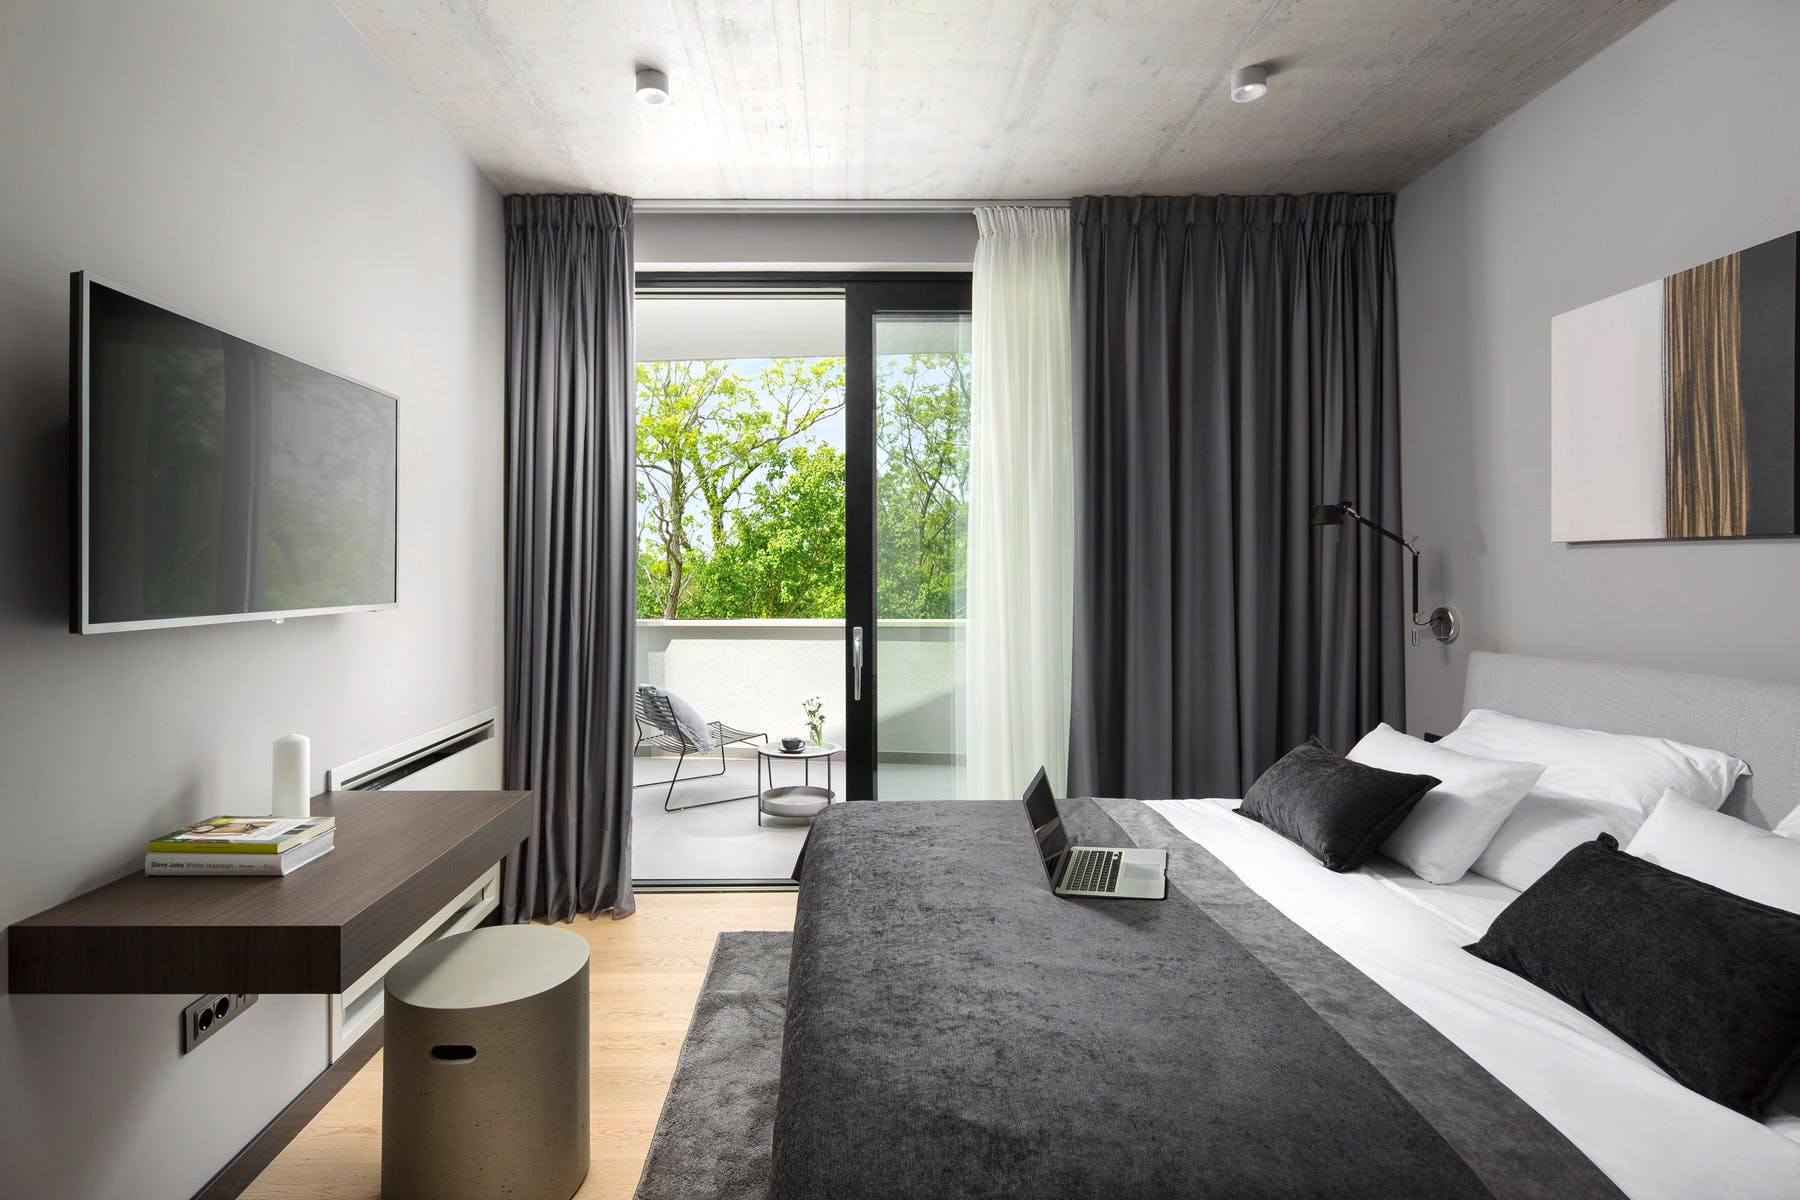 Modern-style bedroom with luxurious features